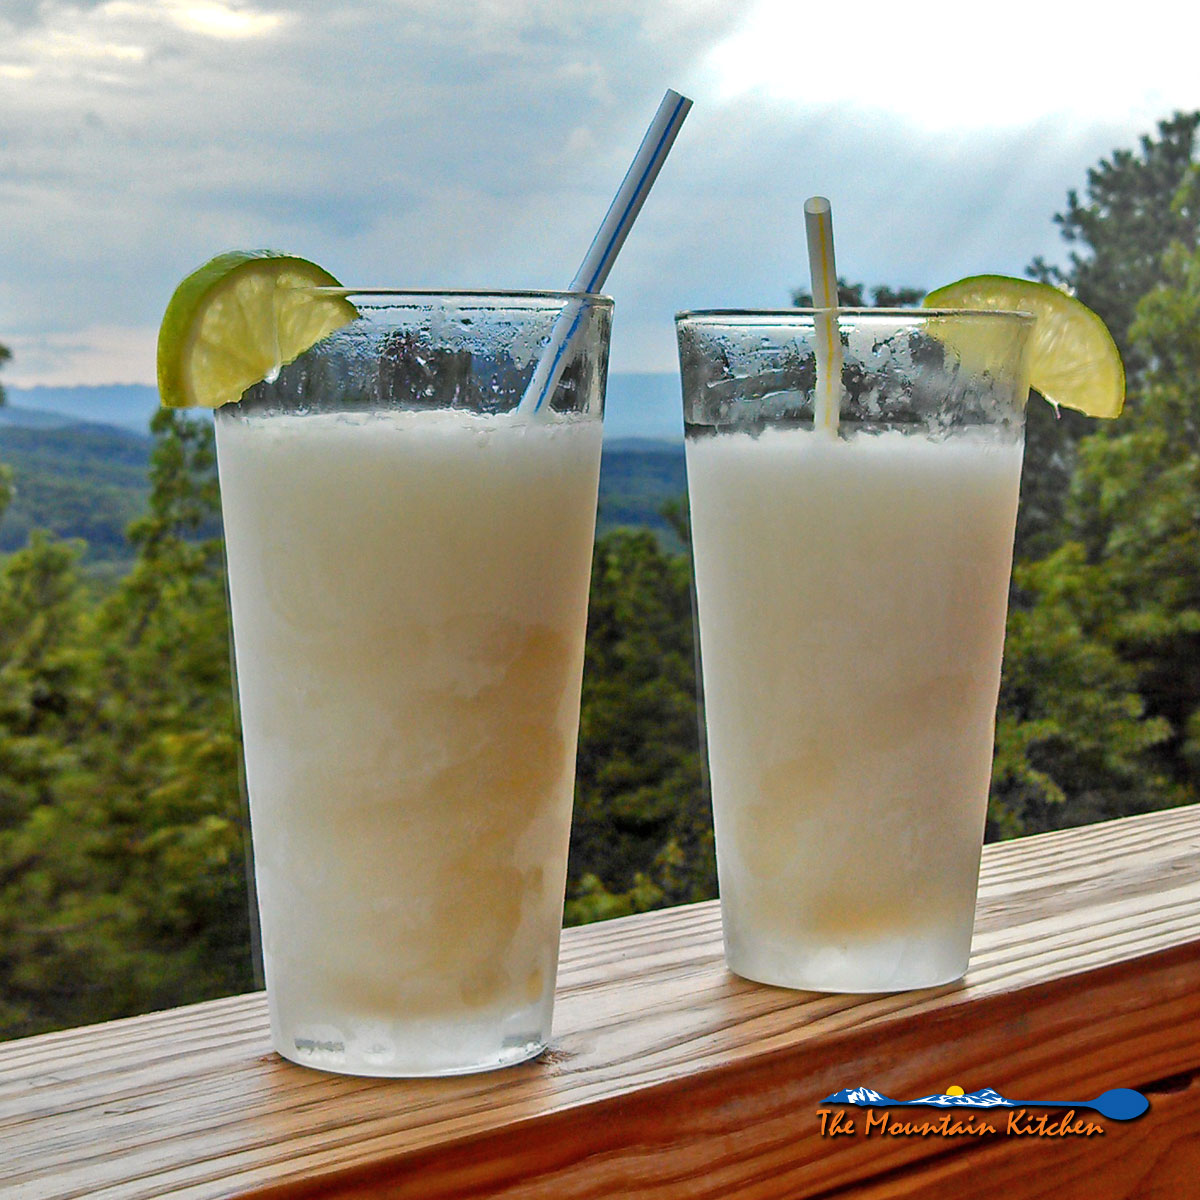 This dangerously good margaritas recipe makes one of the best margaritas I have ever had and it's too good not to share. Let's make one!